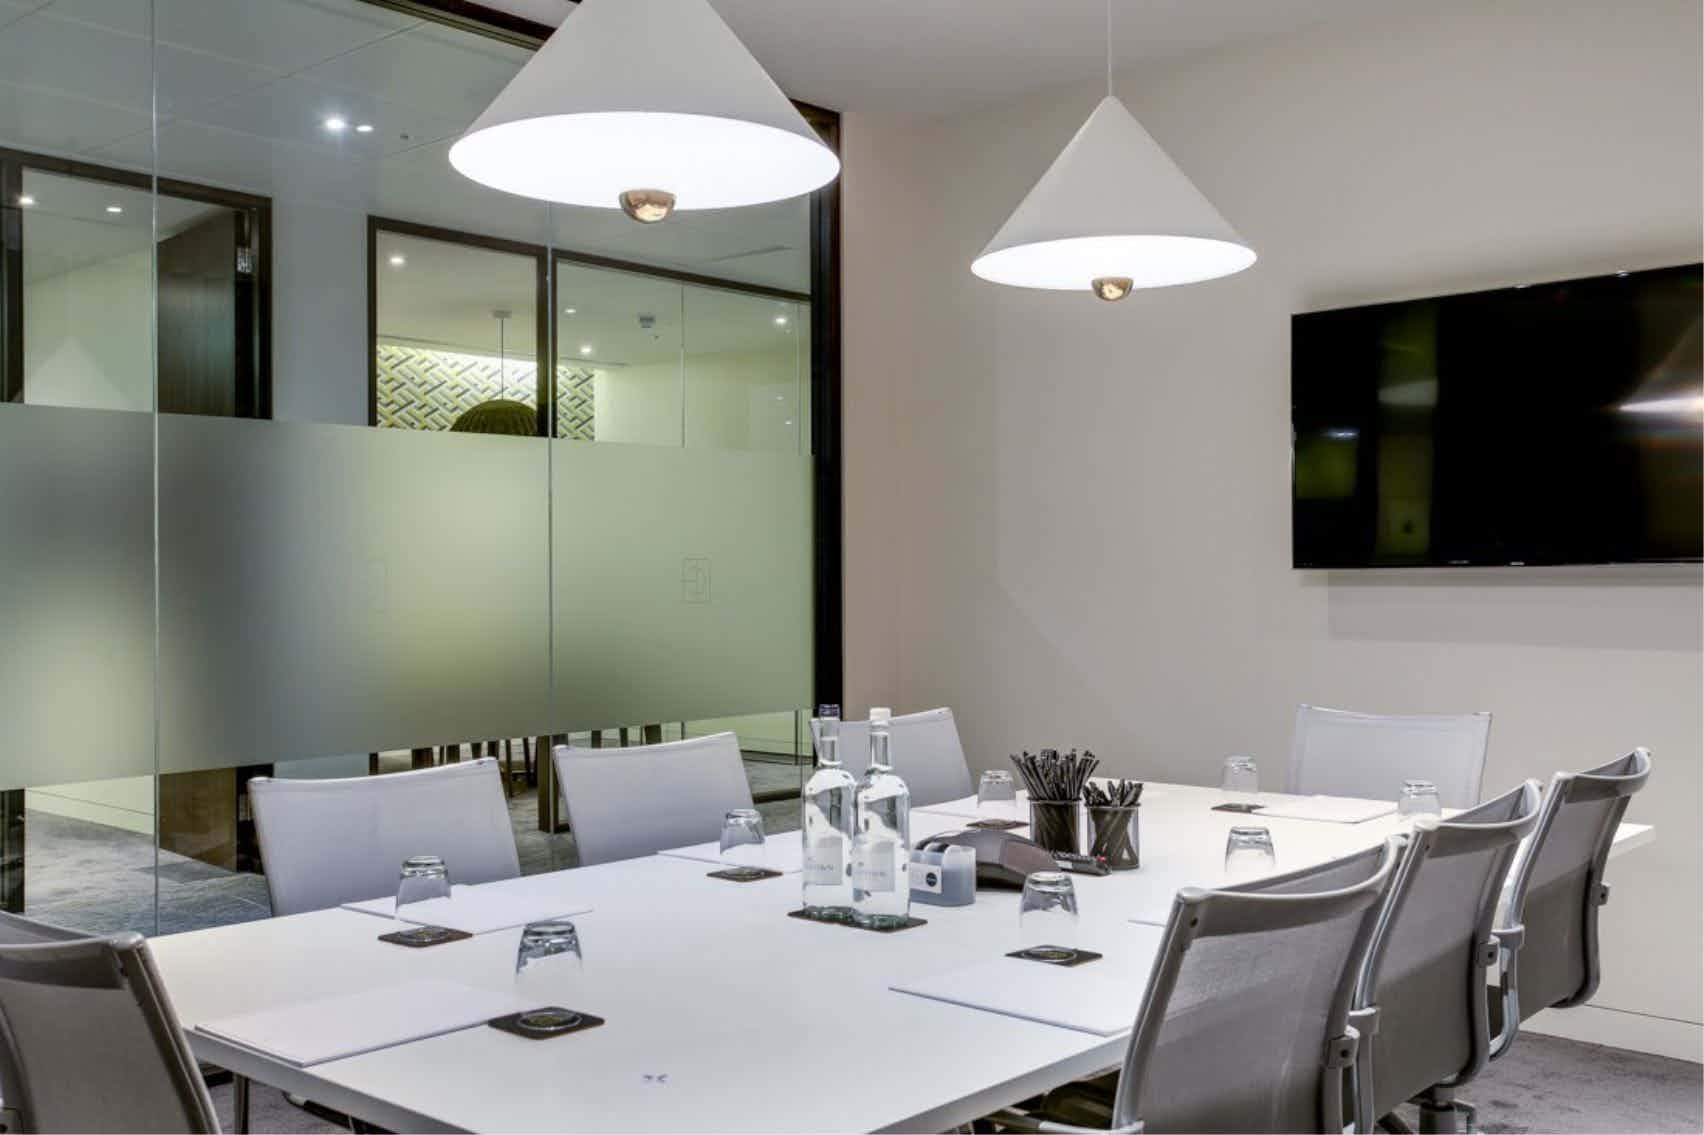 Meeting Room 3, The Clubhouse 8 St. James's Square